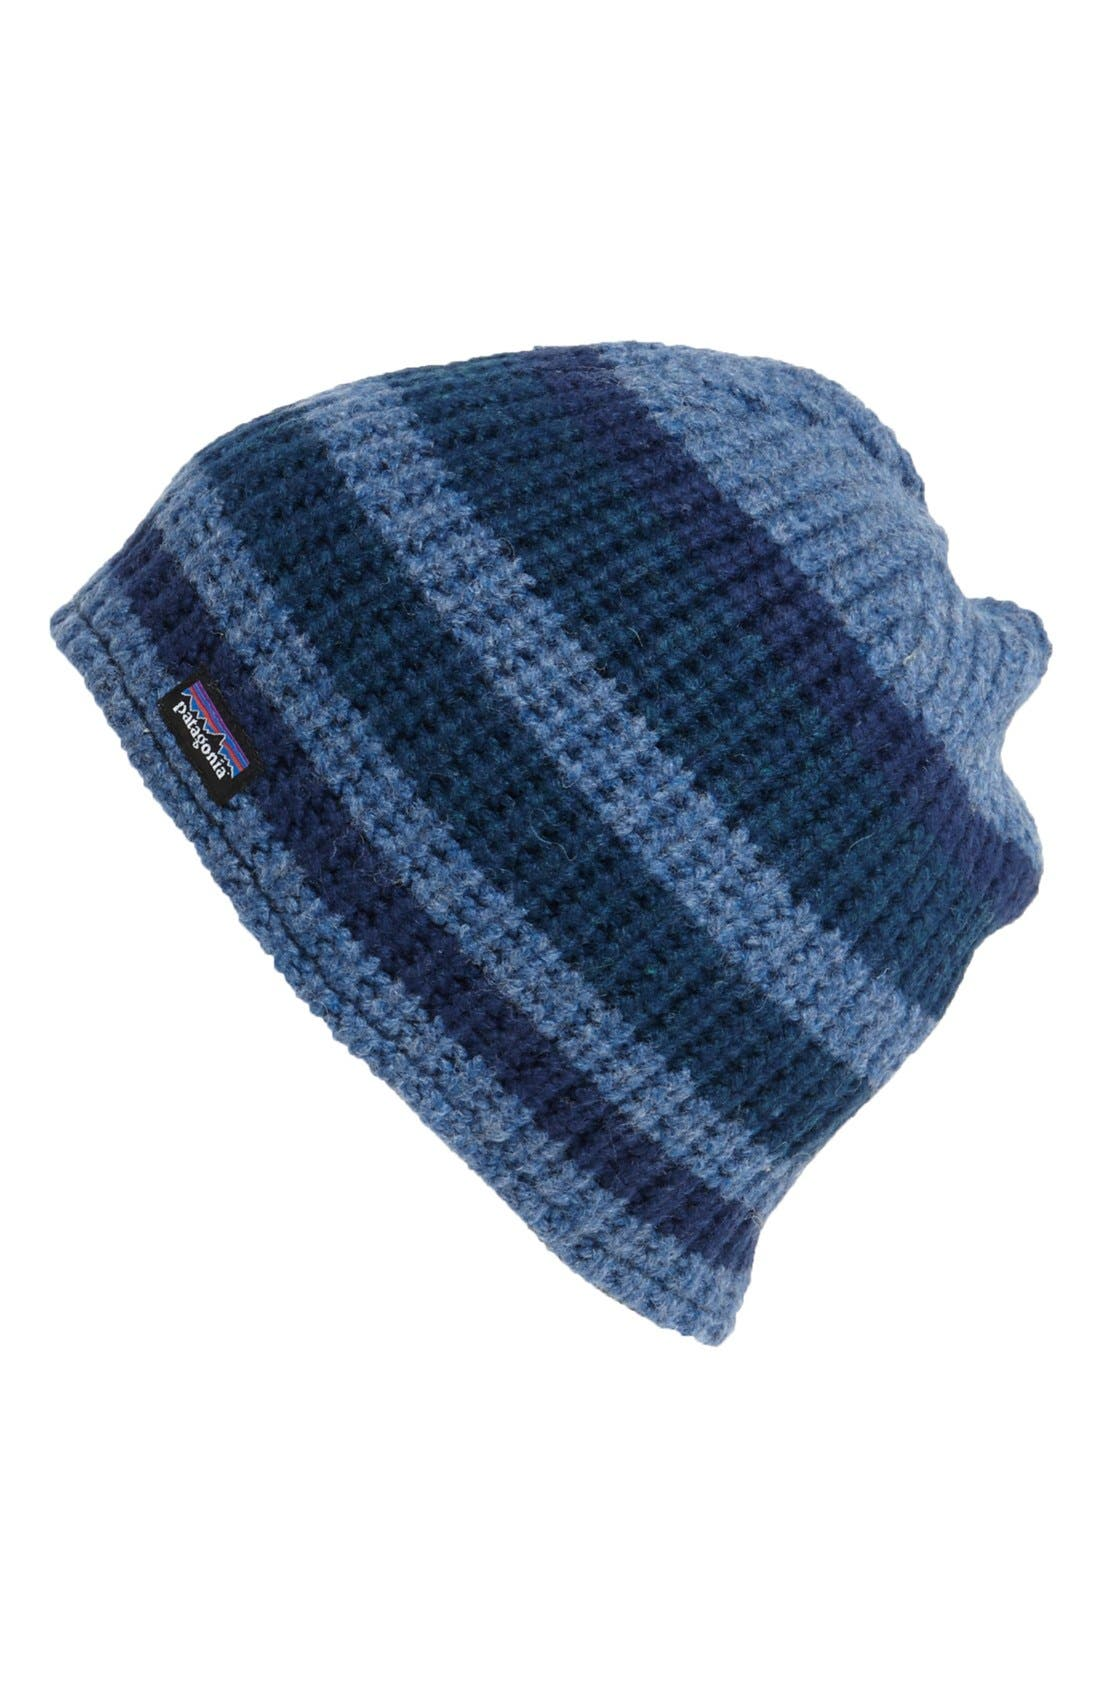 Alternate Image 1 Selected - Patagonia 'Speedway' Beanie